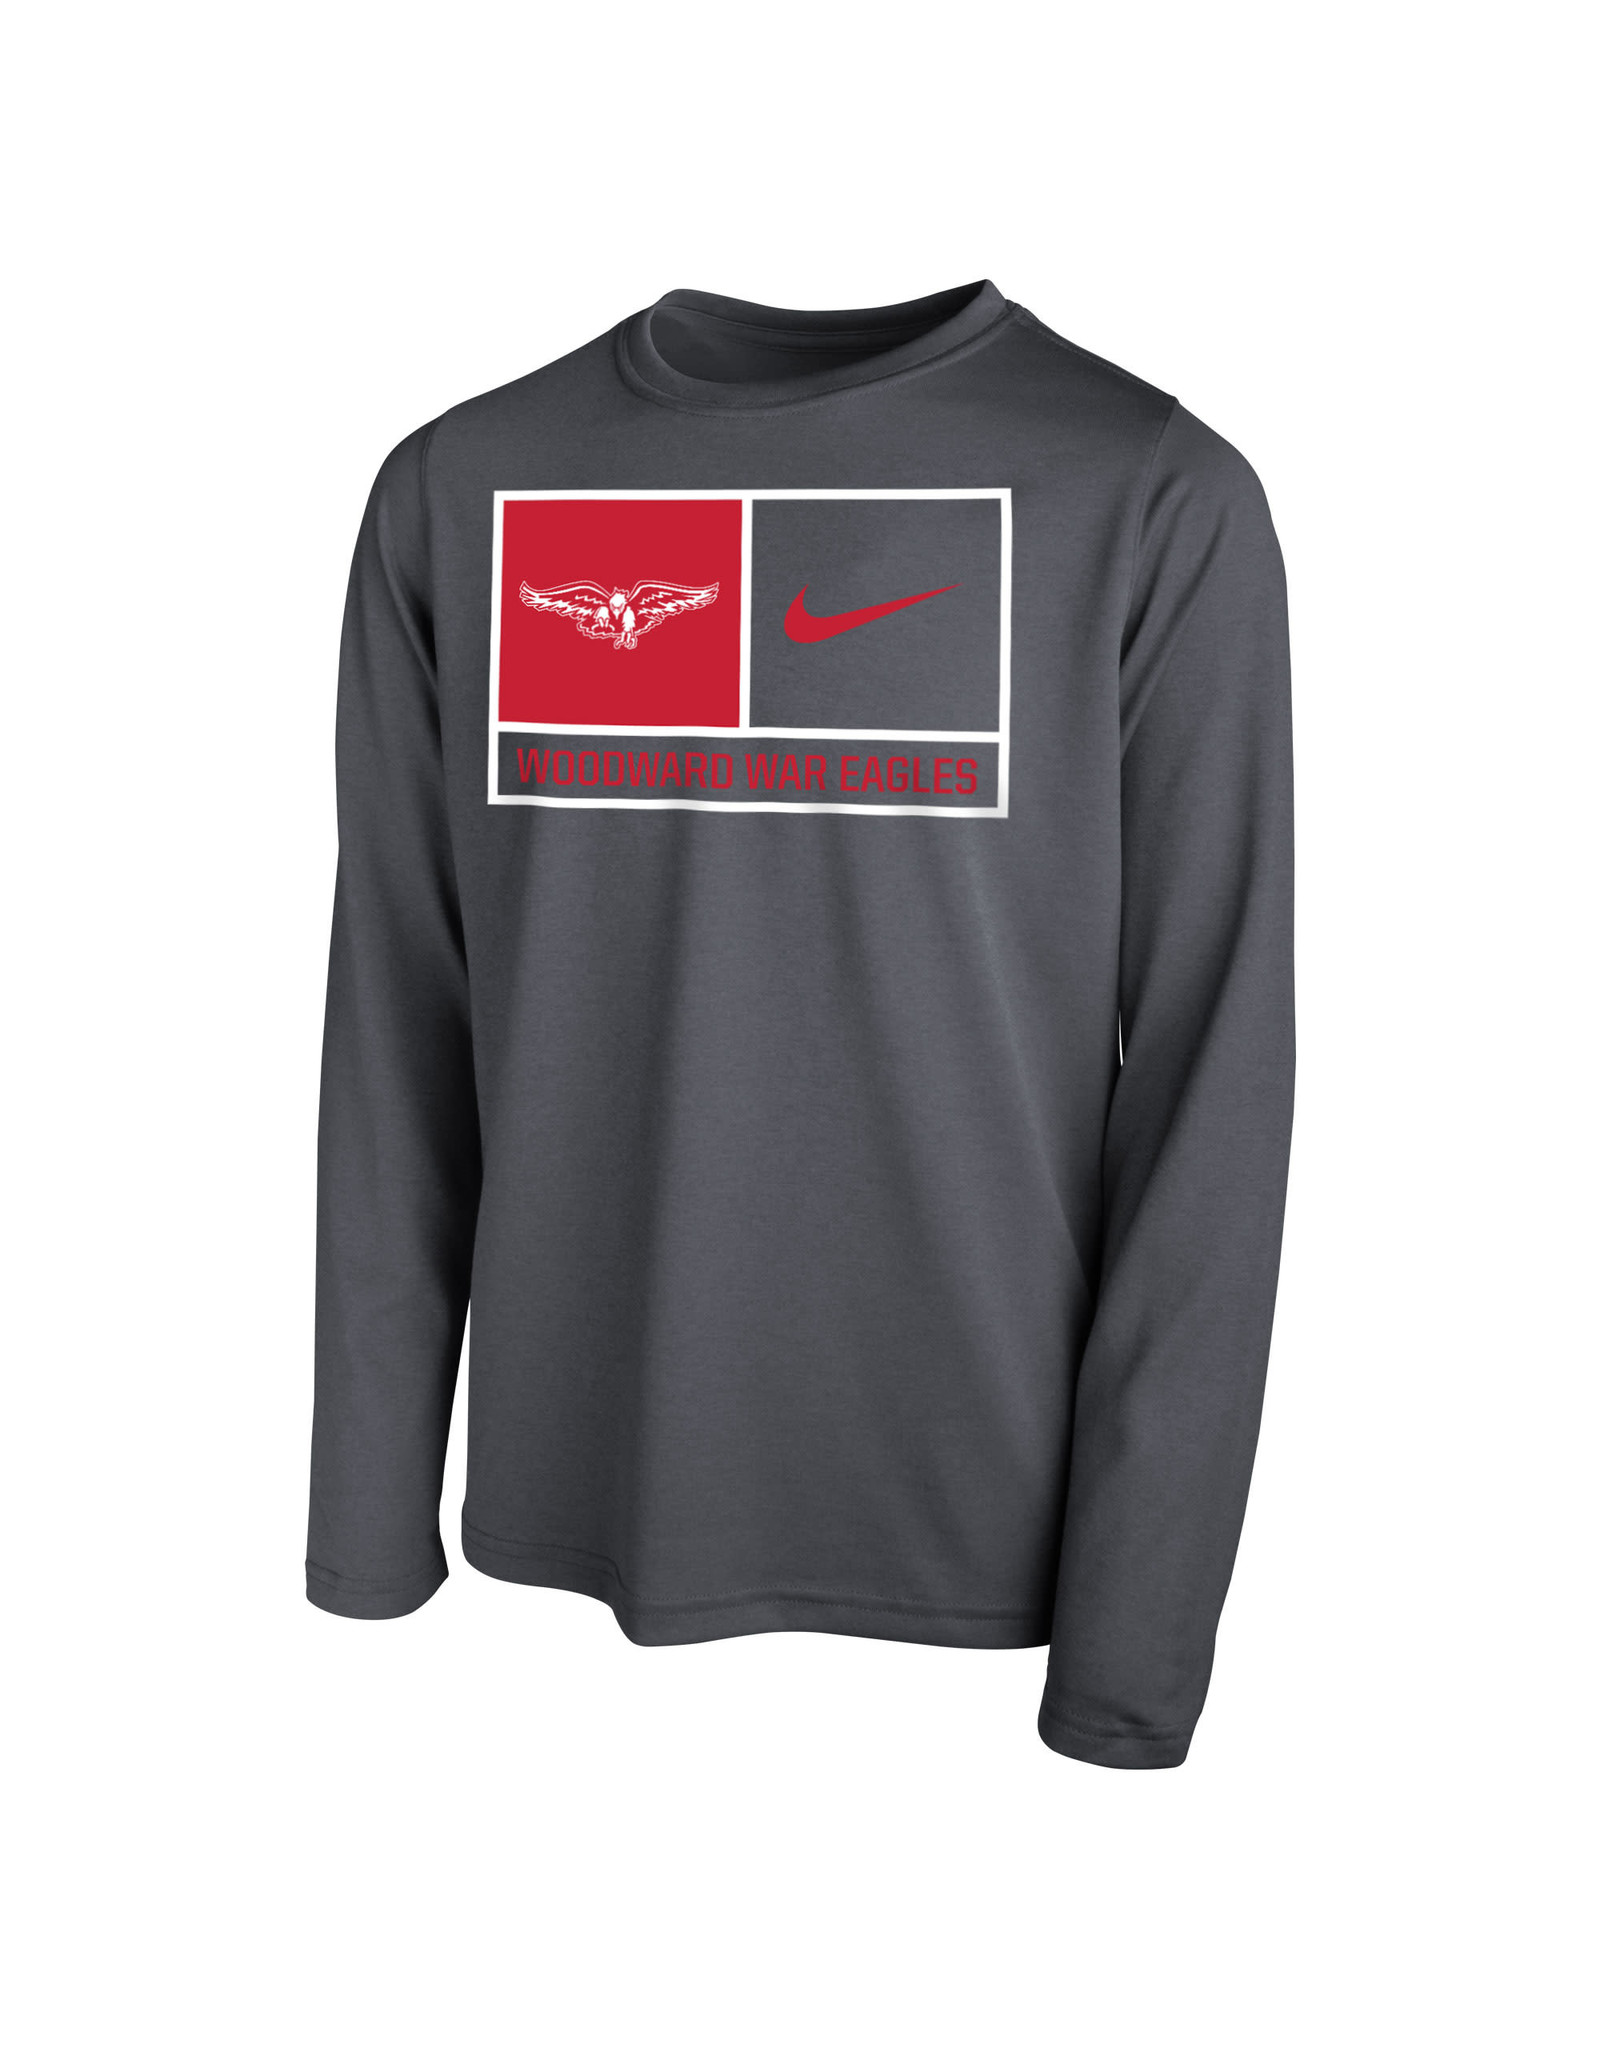 NIKE Youth Legend LS T Shirt in Anthracite